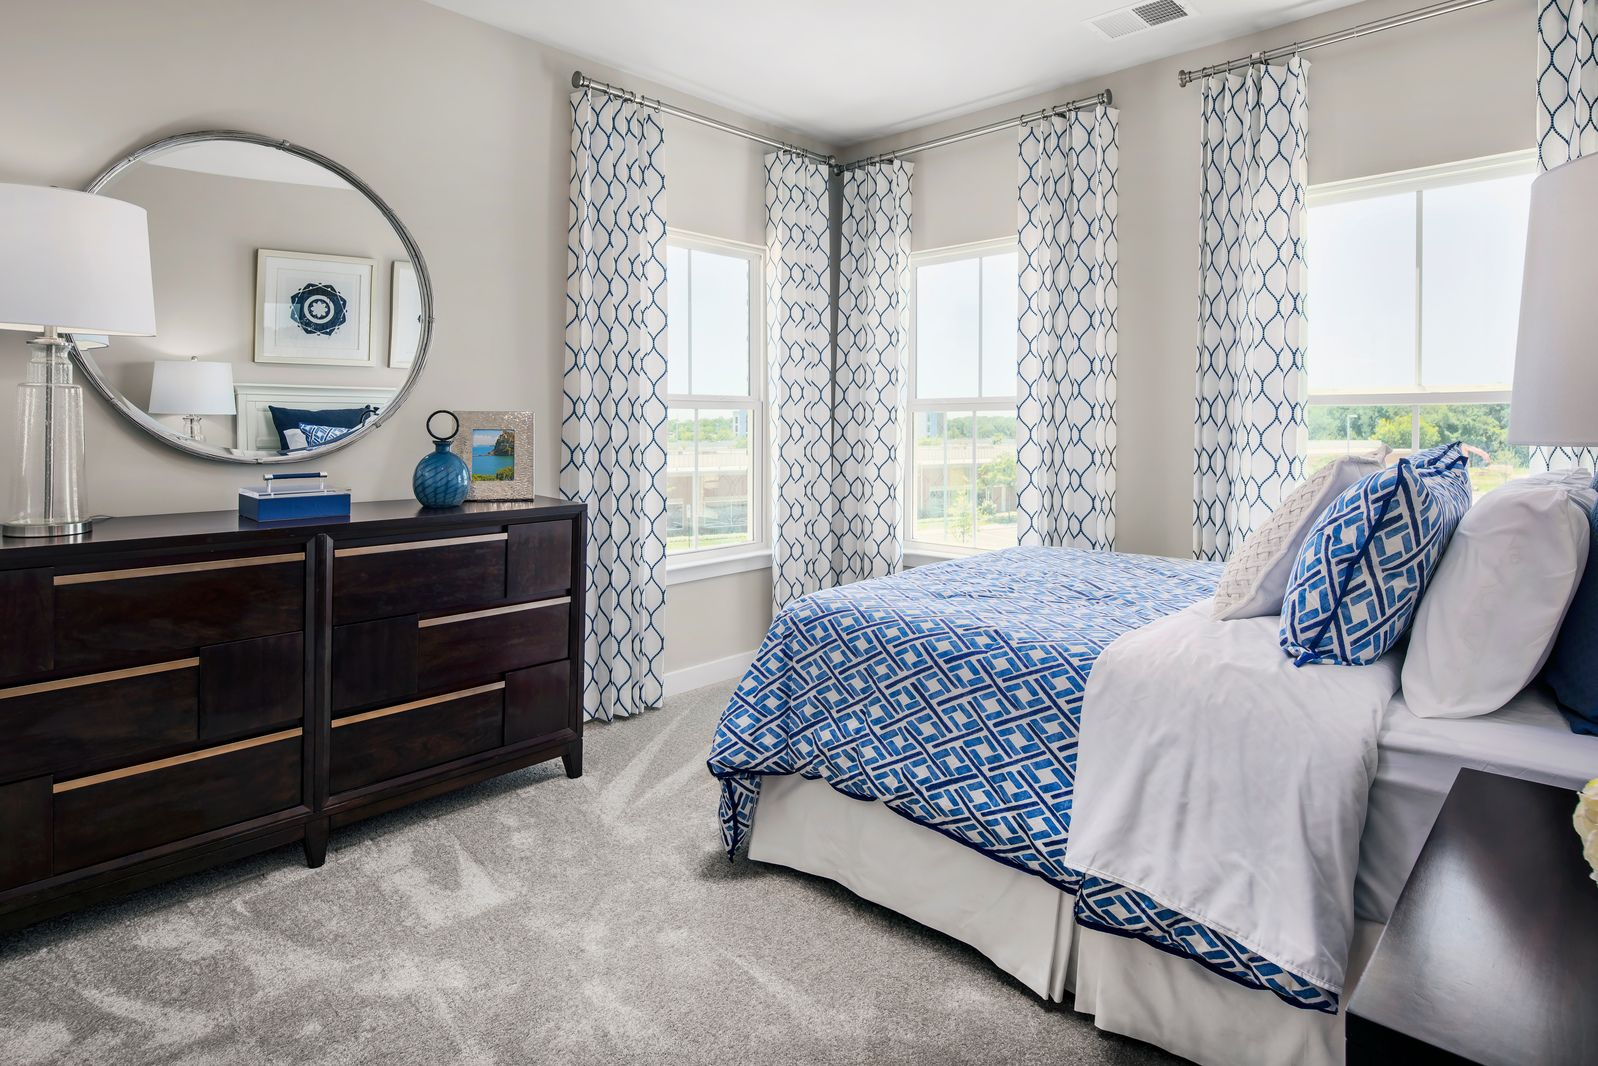 Bedroom featured in the McPherson Grand Rear Entry By NVHomes in Baltimore, MD